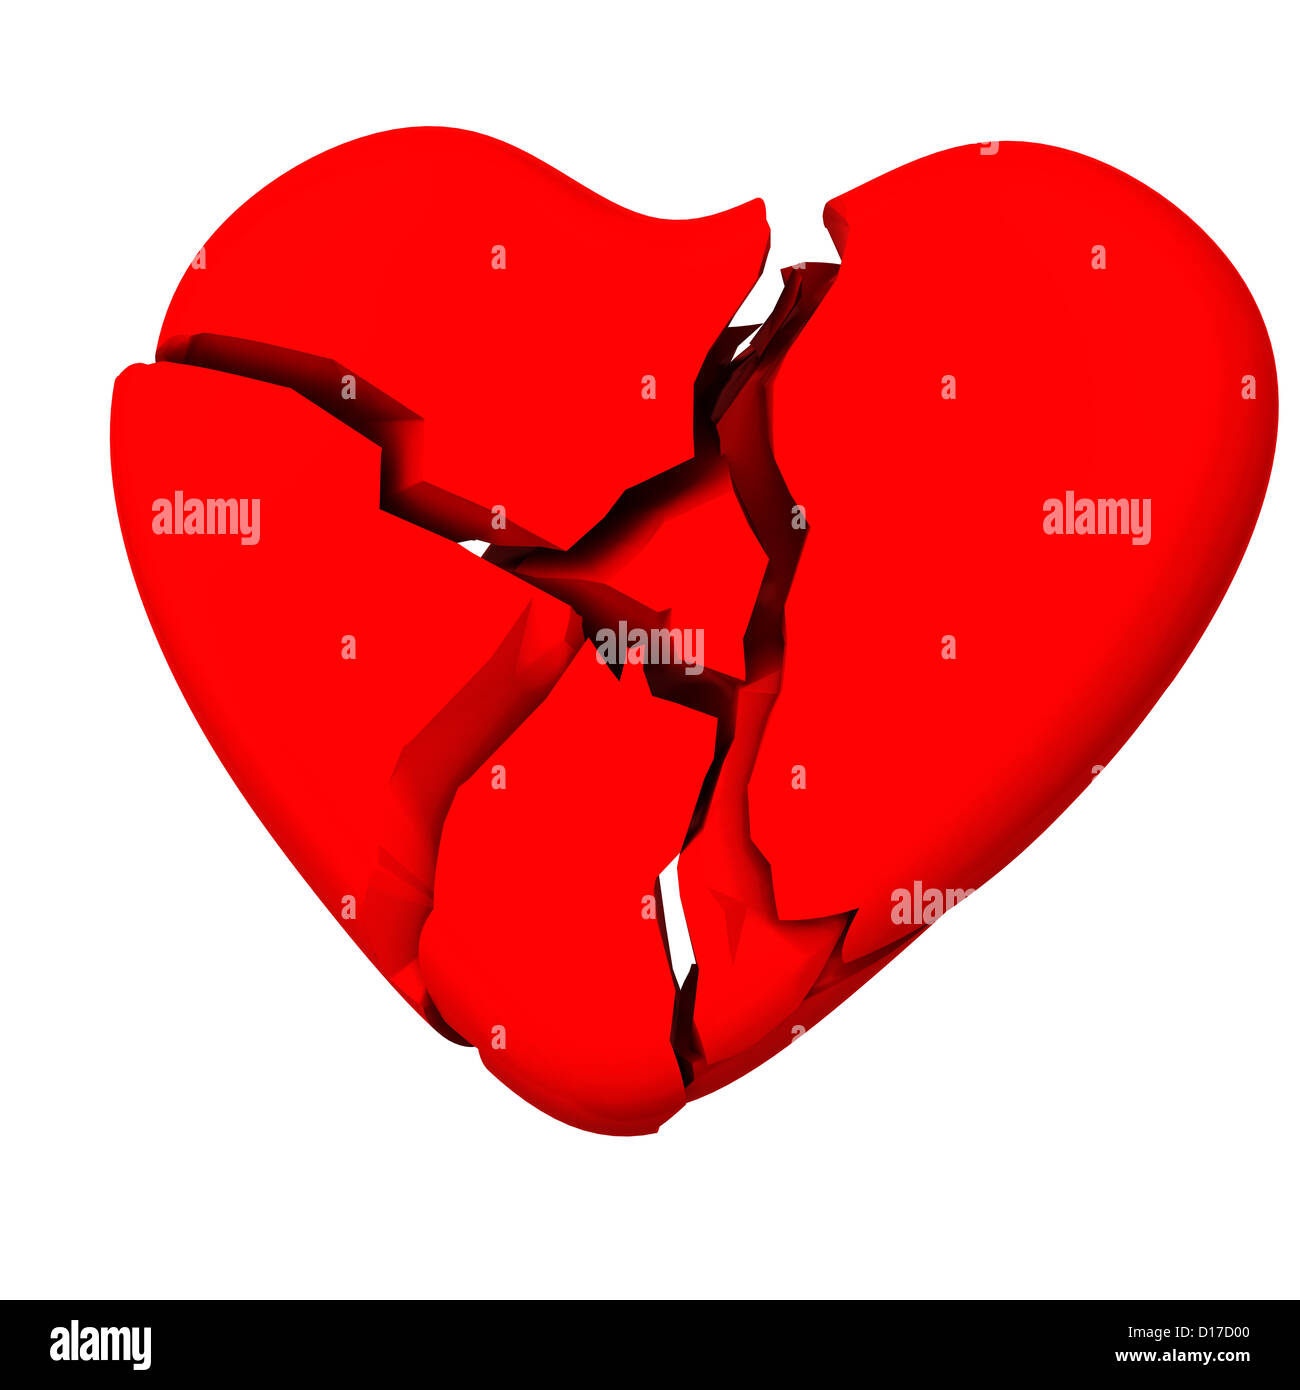 Red broken heart 3d image symbol of divorce and sad love stock red broken heart 3d image symbol of divorce and sad love altavistaventures